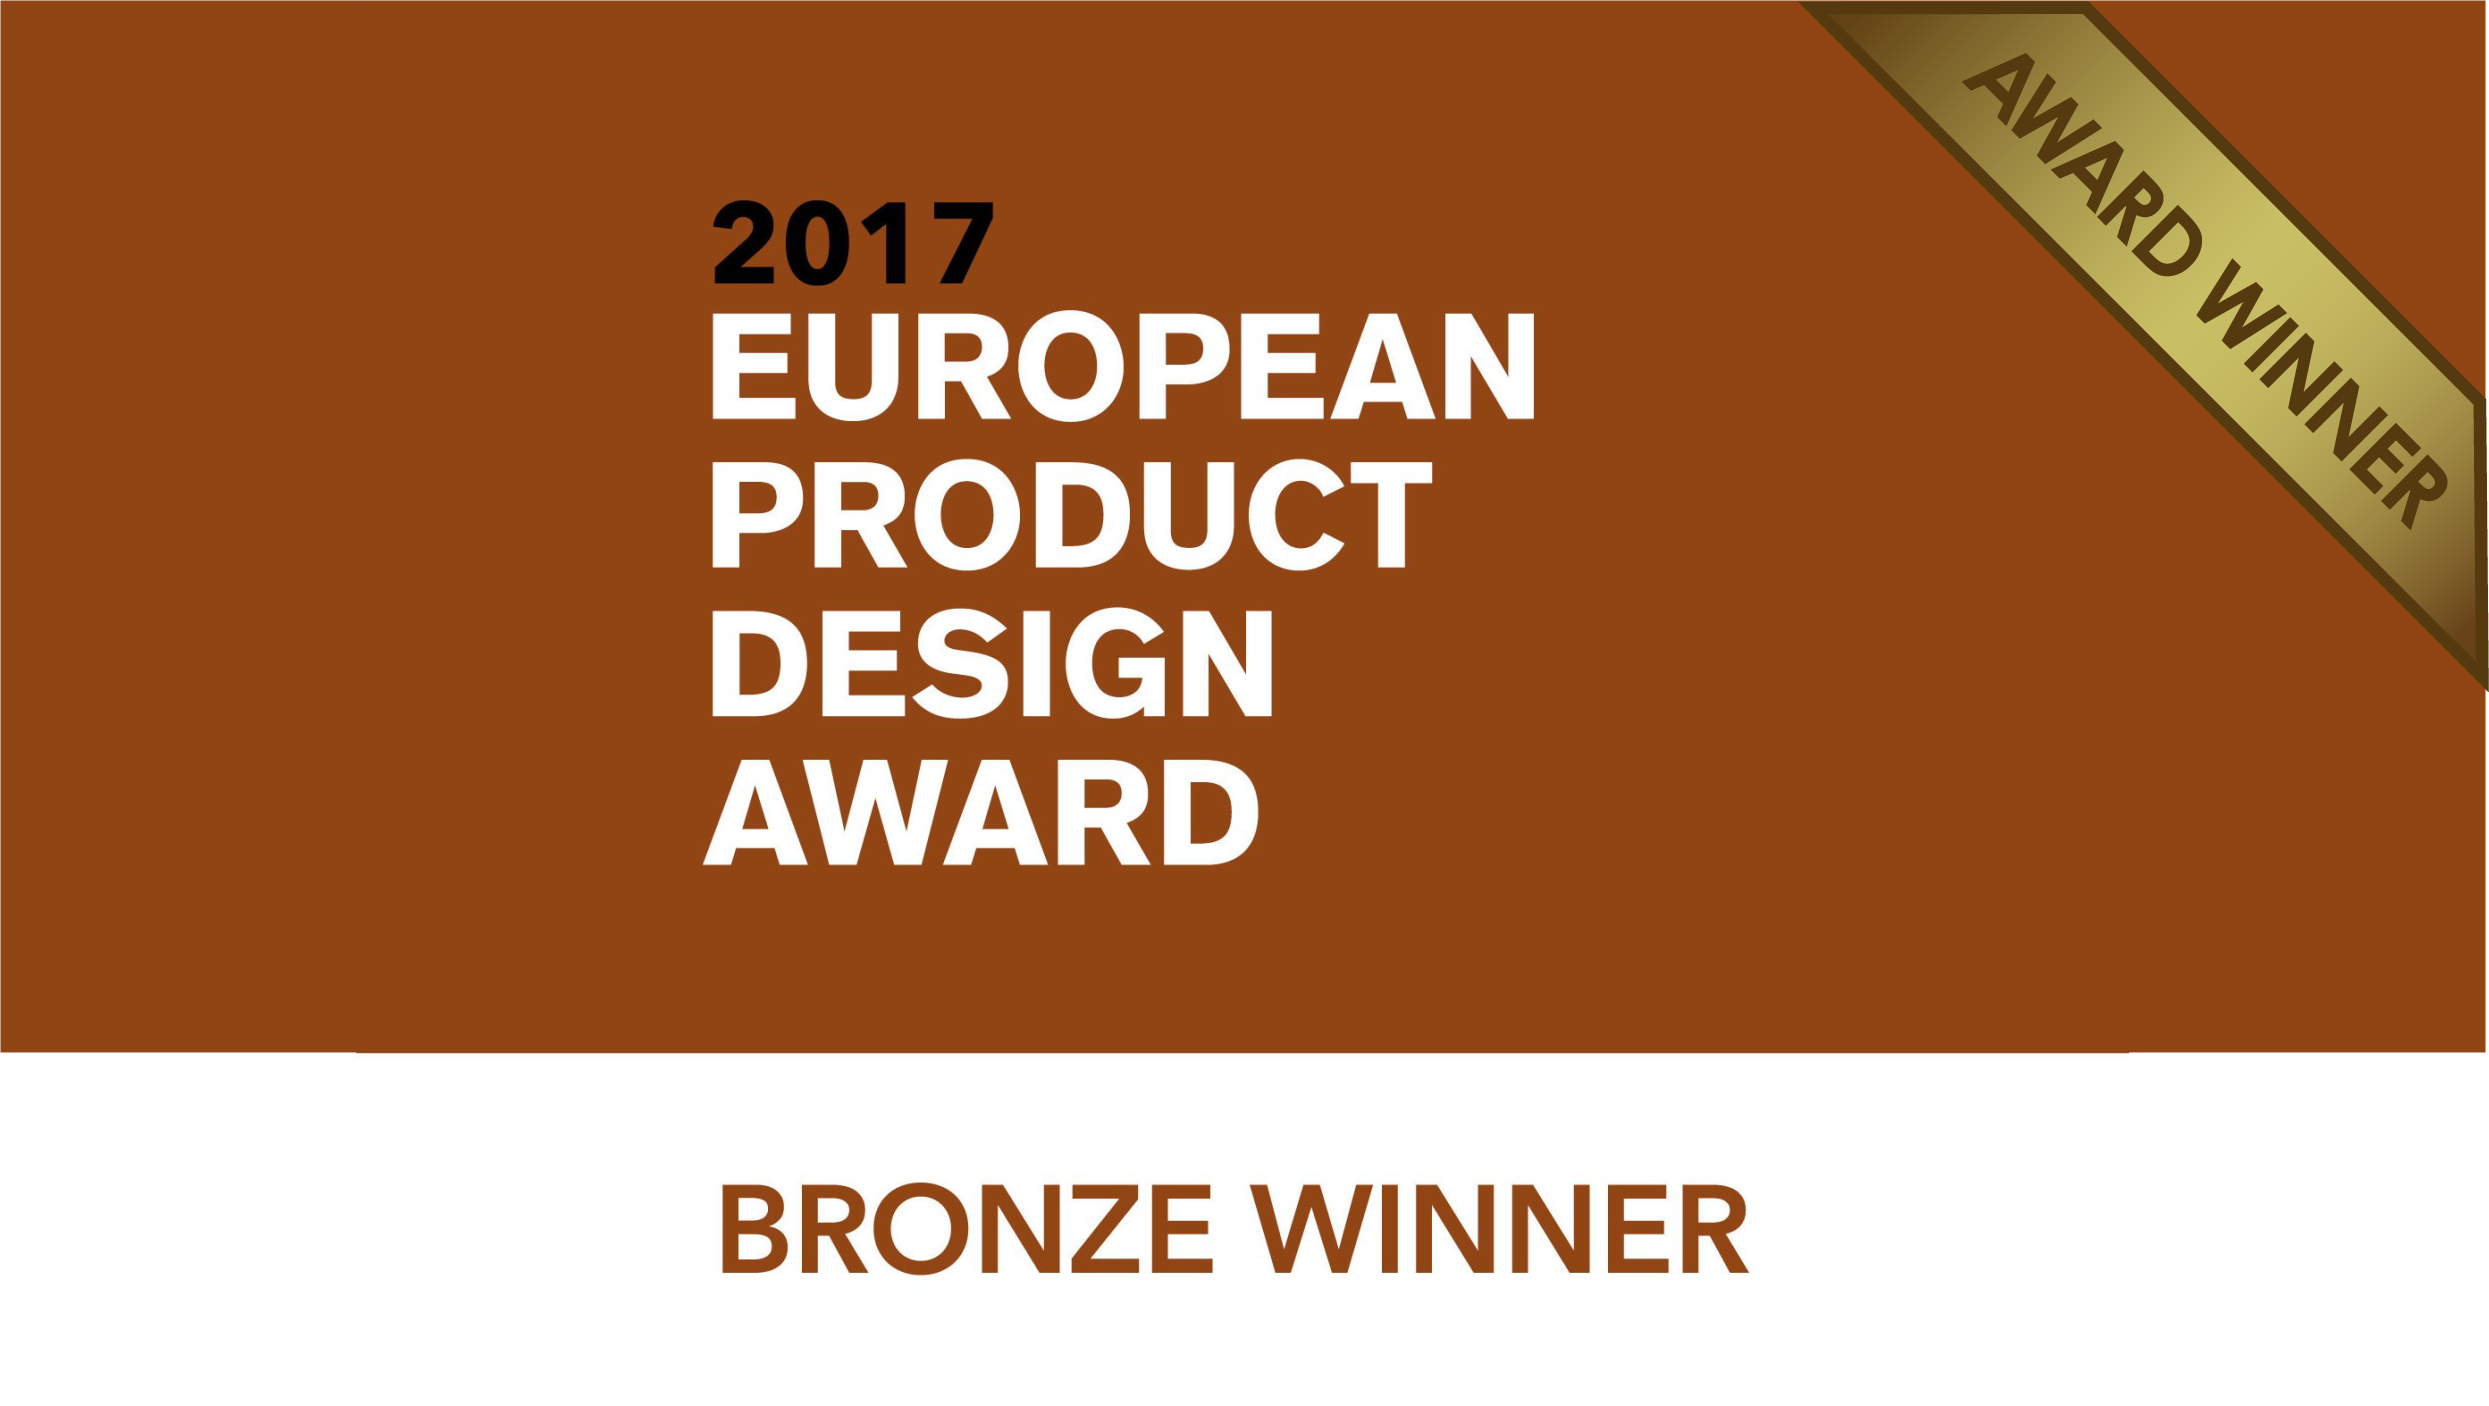 EUROPEAN PRODUCT DESIGN AWARD - Bronze Medal